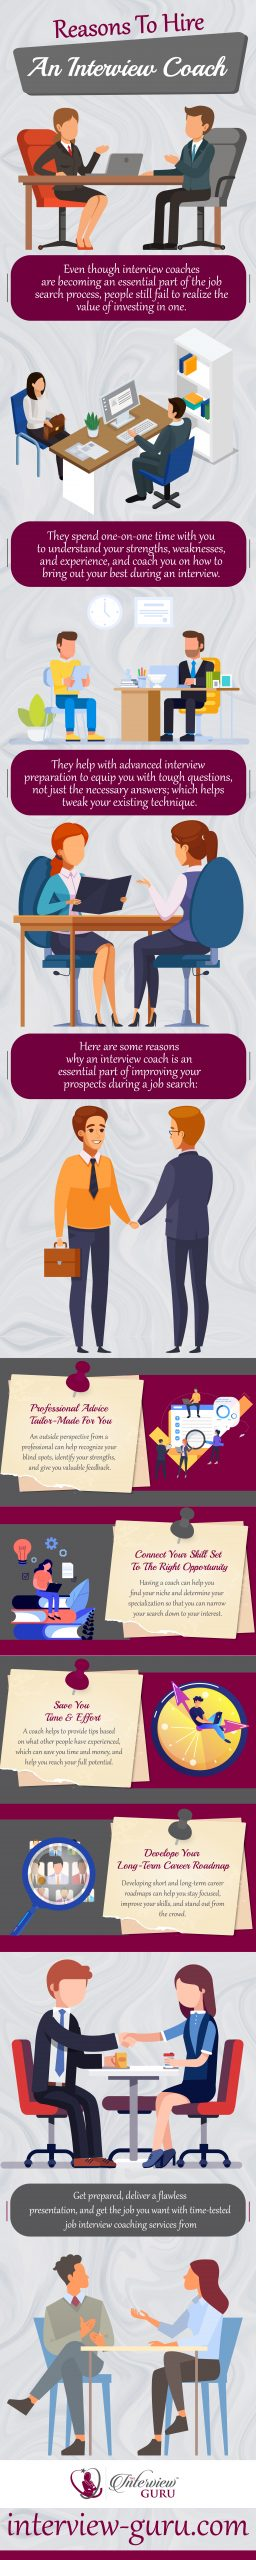 Reasons you should Hire an Interview Coach - Infograph